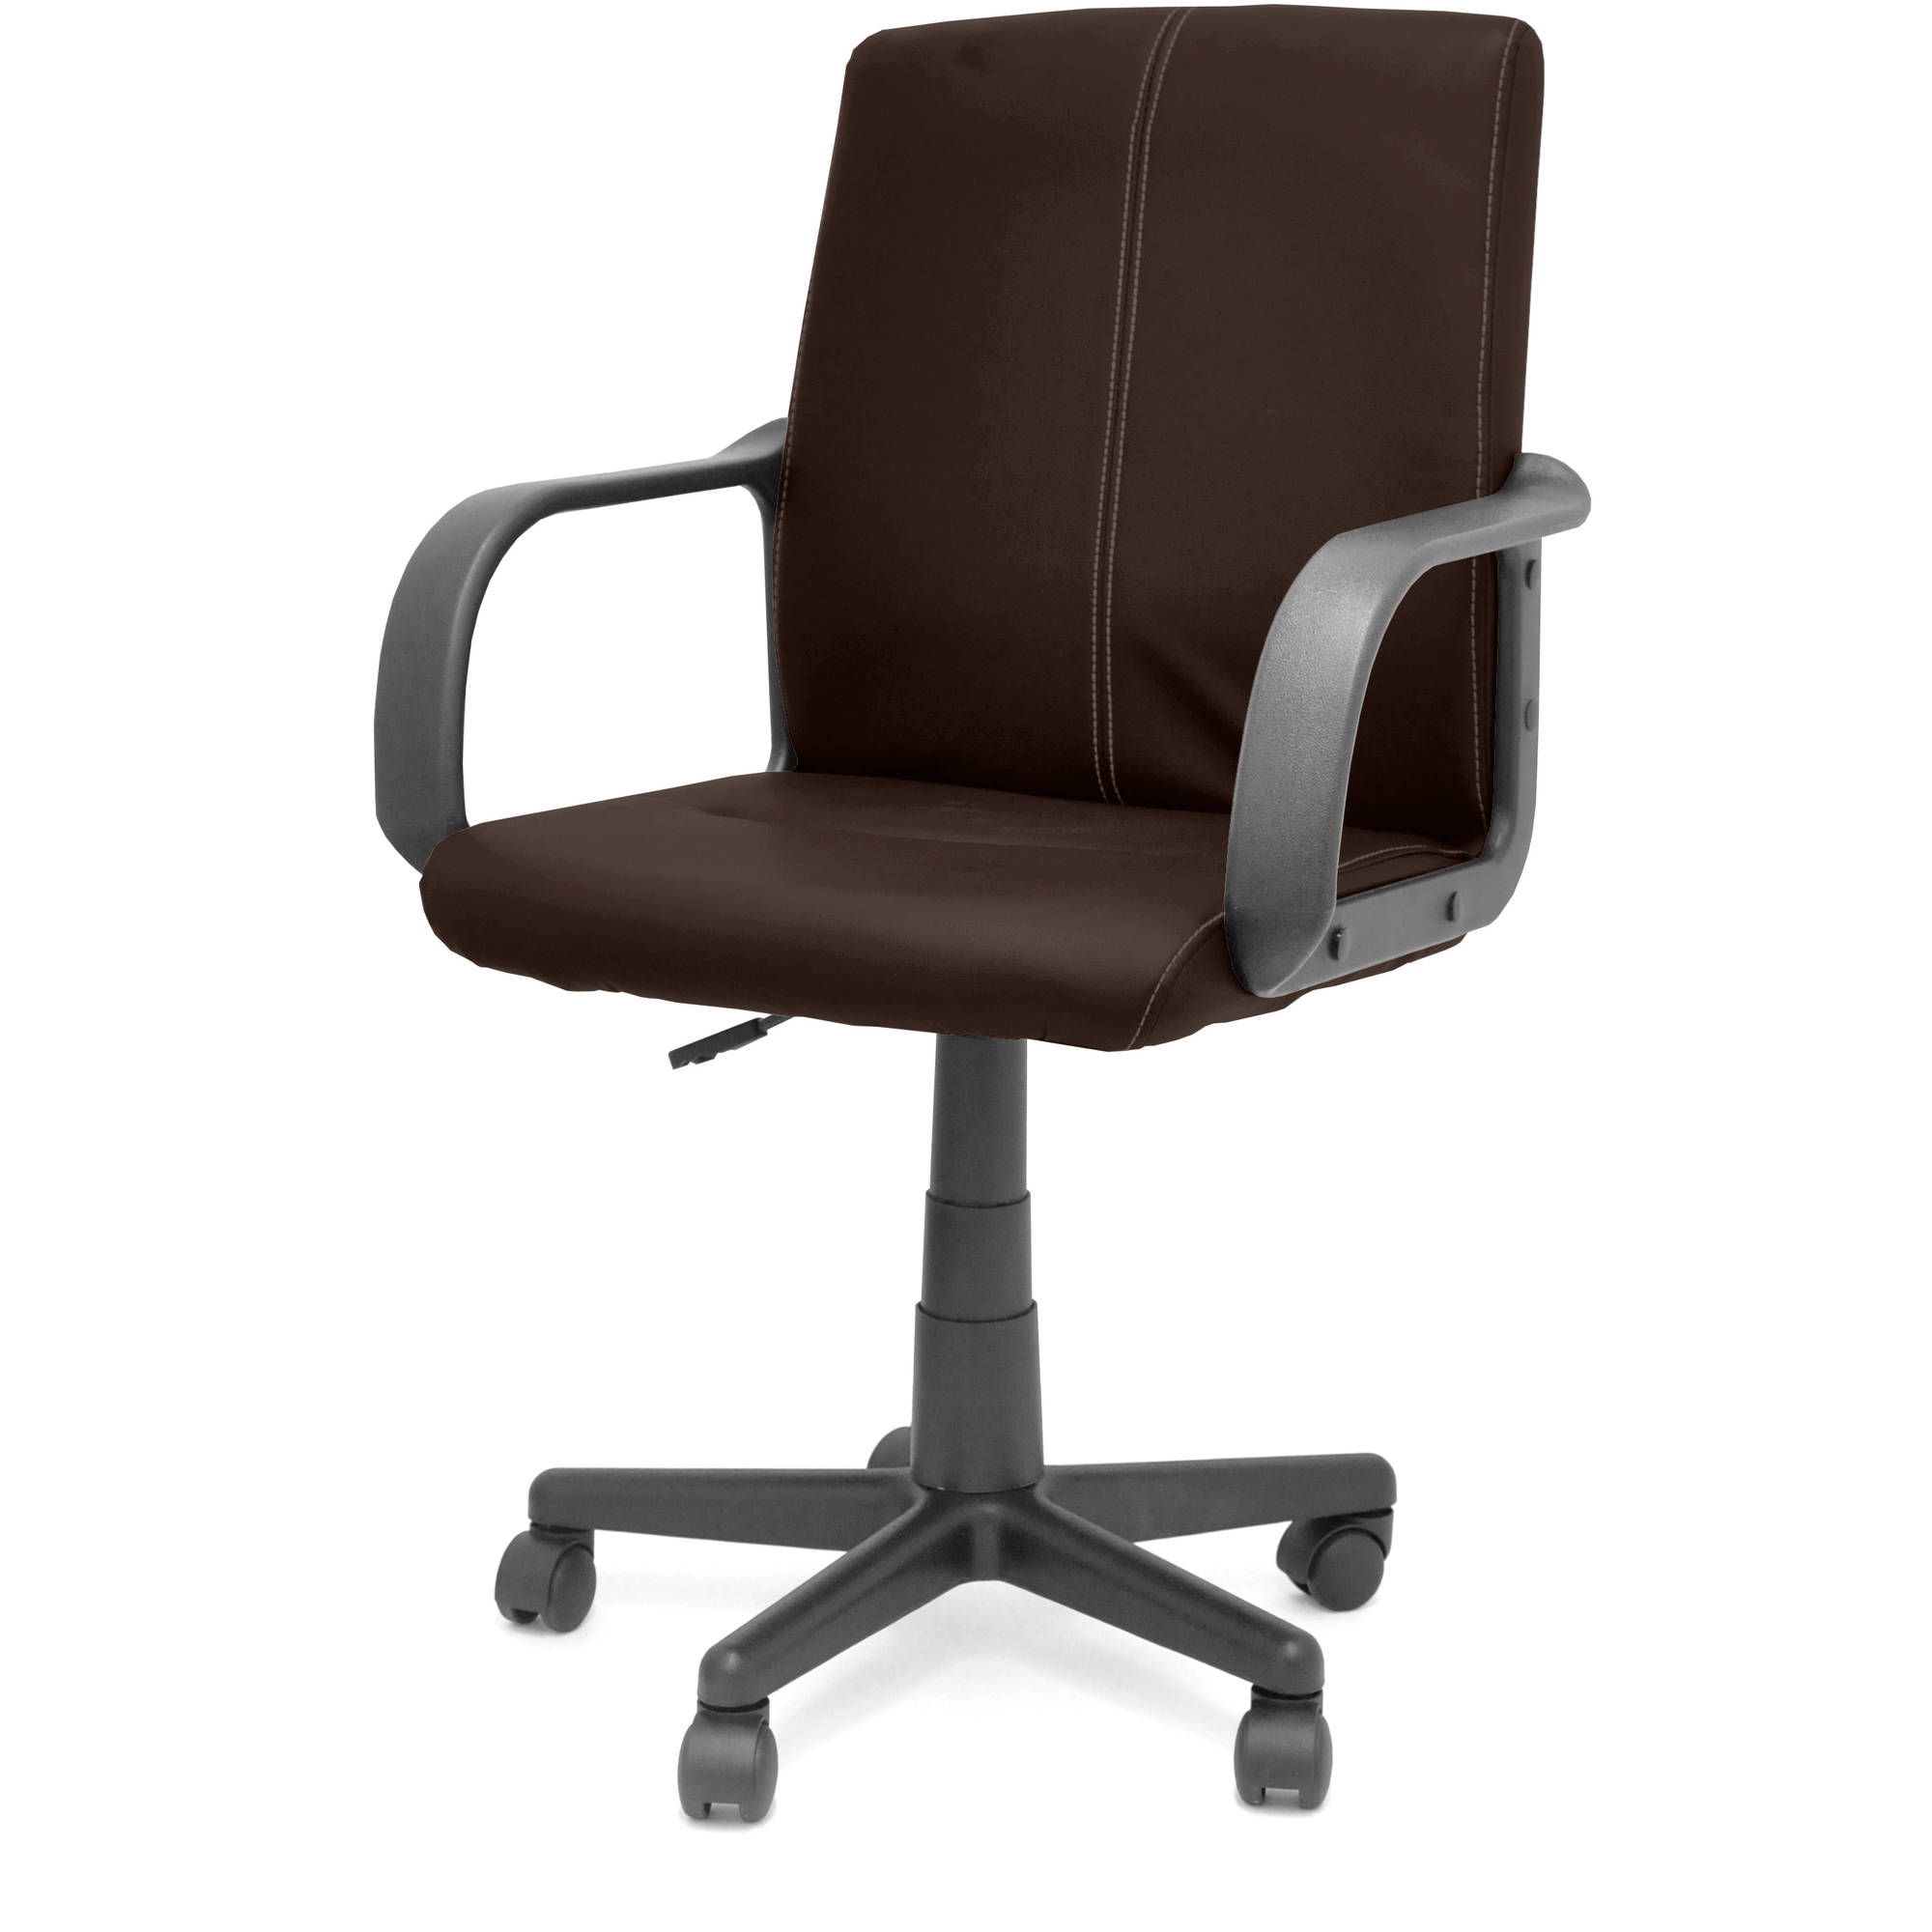 workpro commercial mesh back executive chair black swing with stand price briessa mid amazon com giantex ergonomic pu